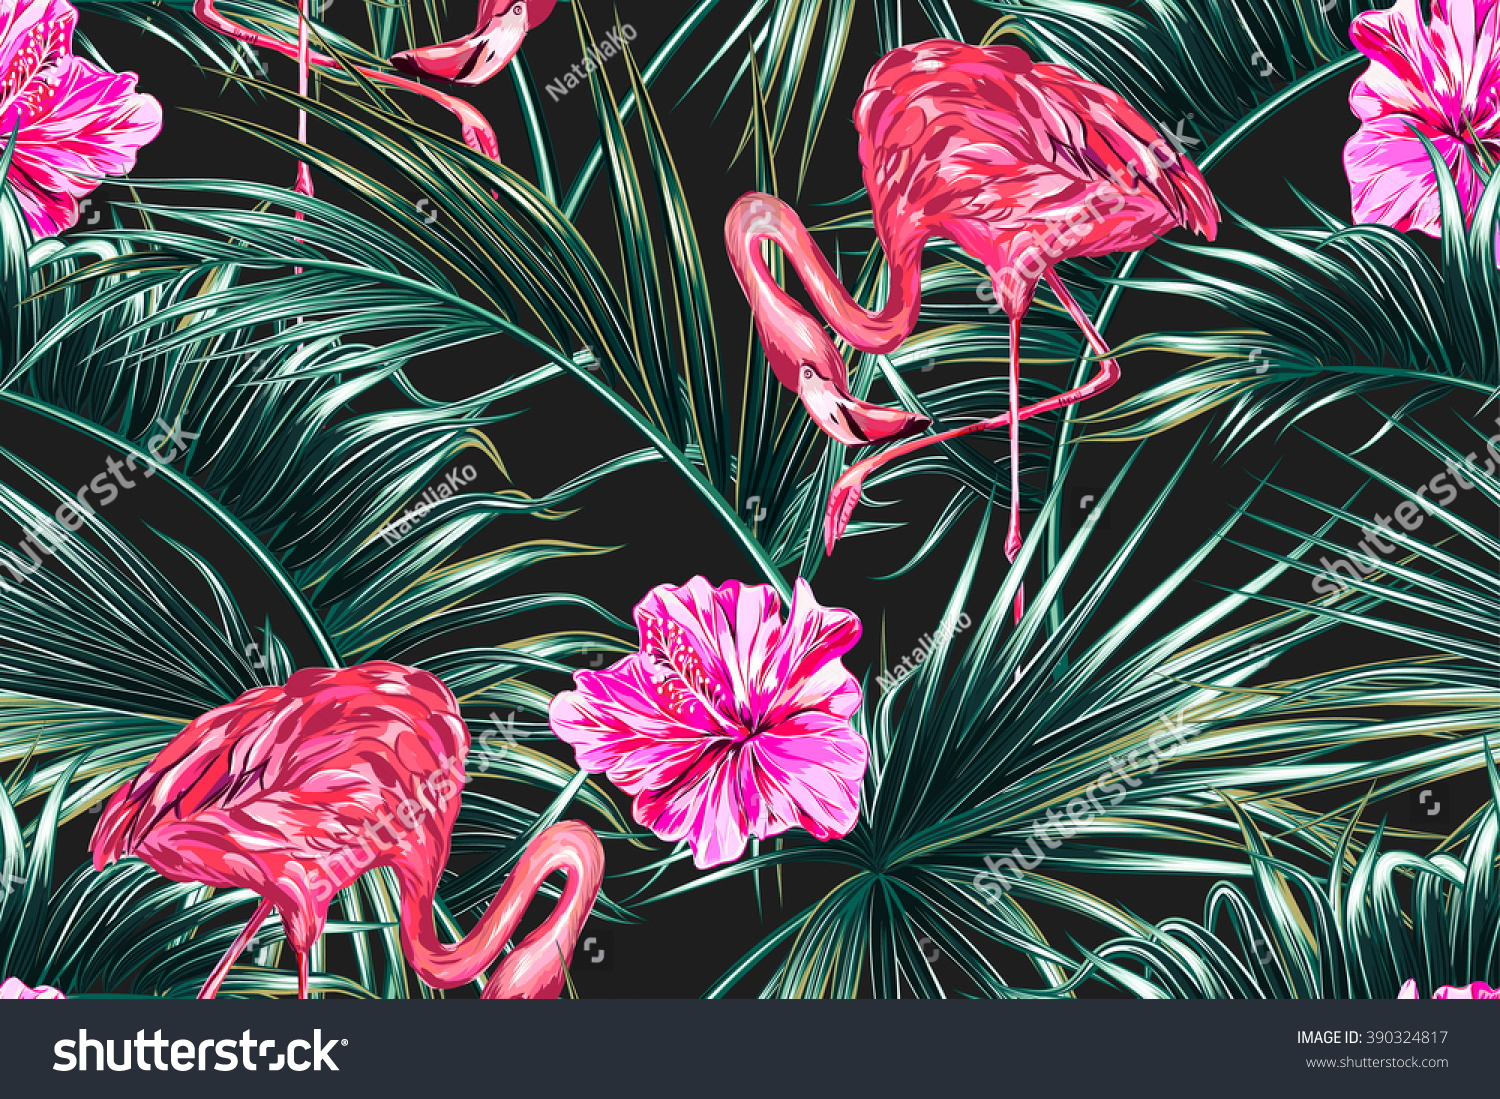 Pink Flamingos Tropical Flowers Palm Leaves 390324817